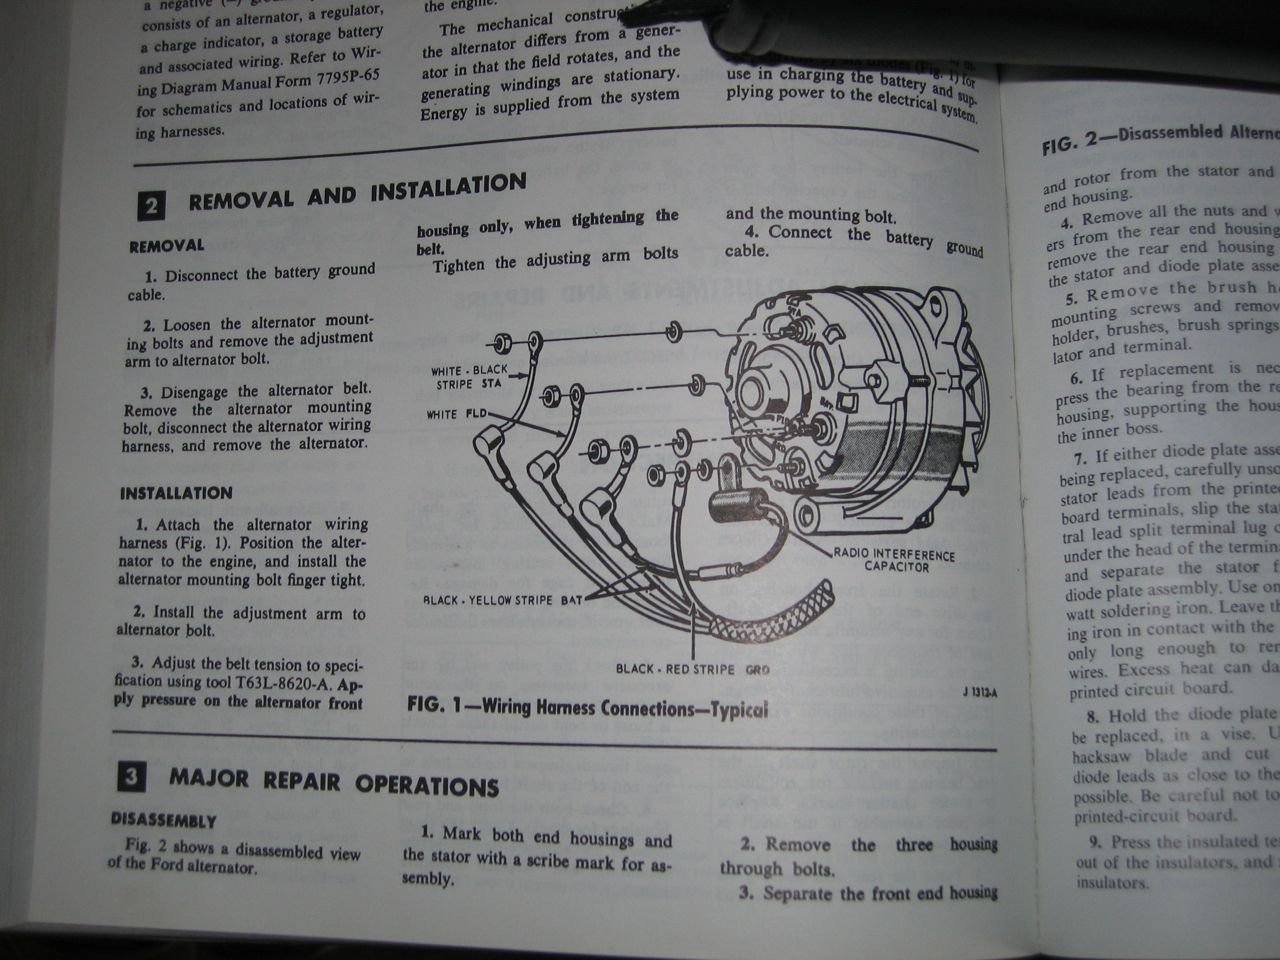 hight resolution of 1966 ford alternator wiring trusted wiring diagram 1988 ford alternator wiring diagram 1974 ford alternator wiring